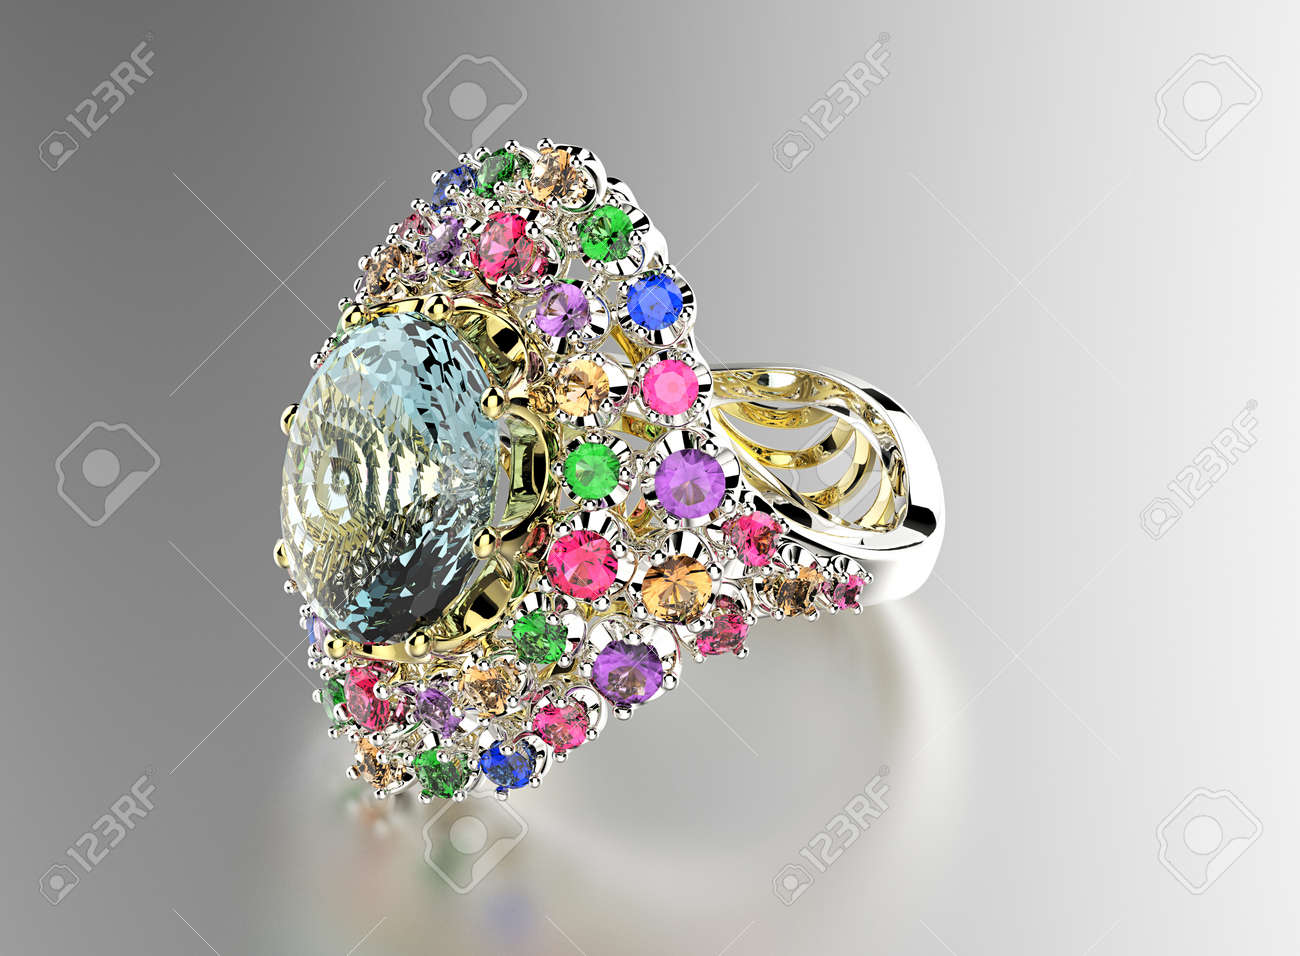 image wiki diamond click color view different size full to fancy diamonds colored pricescope